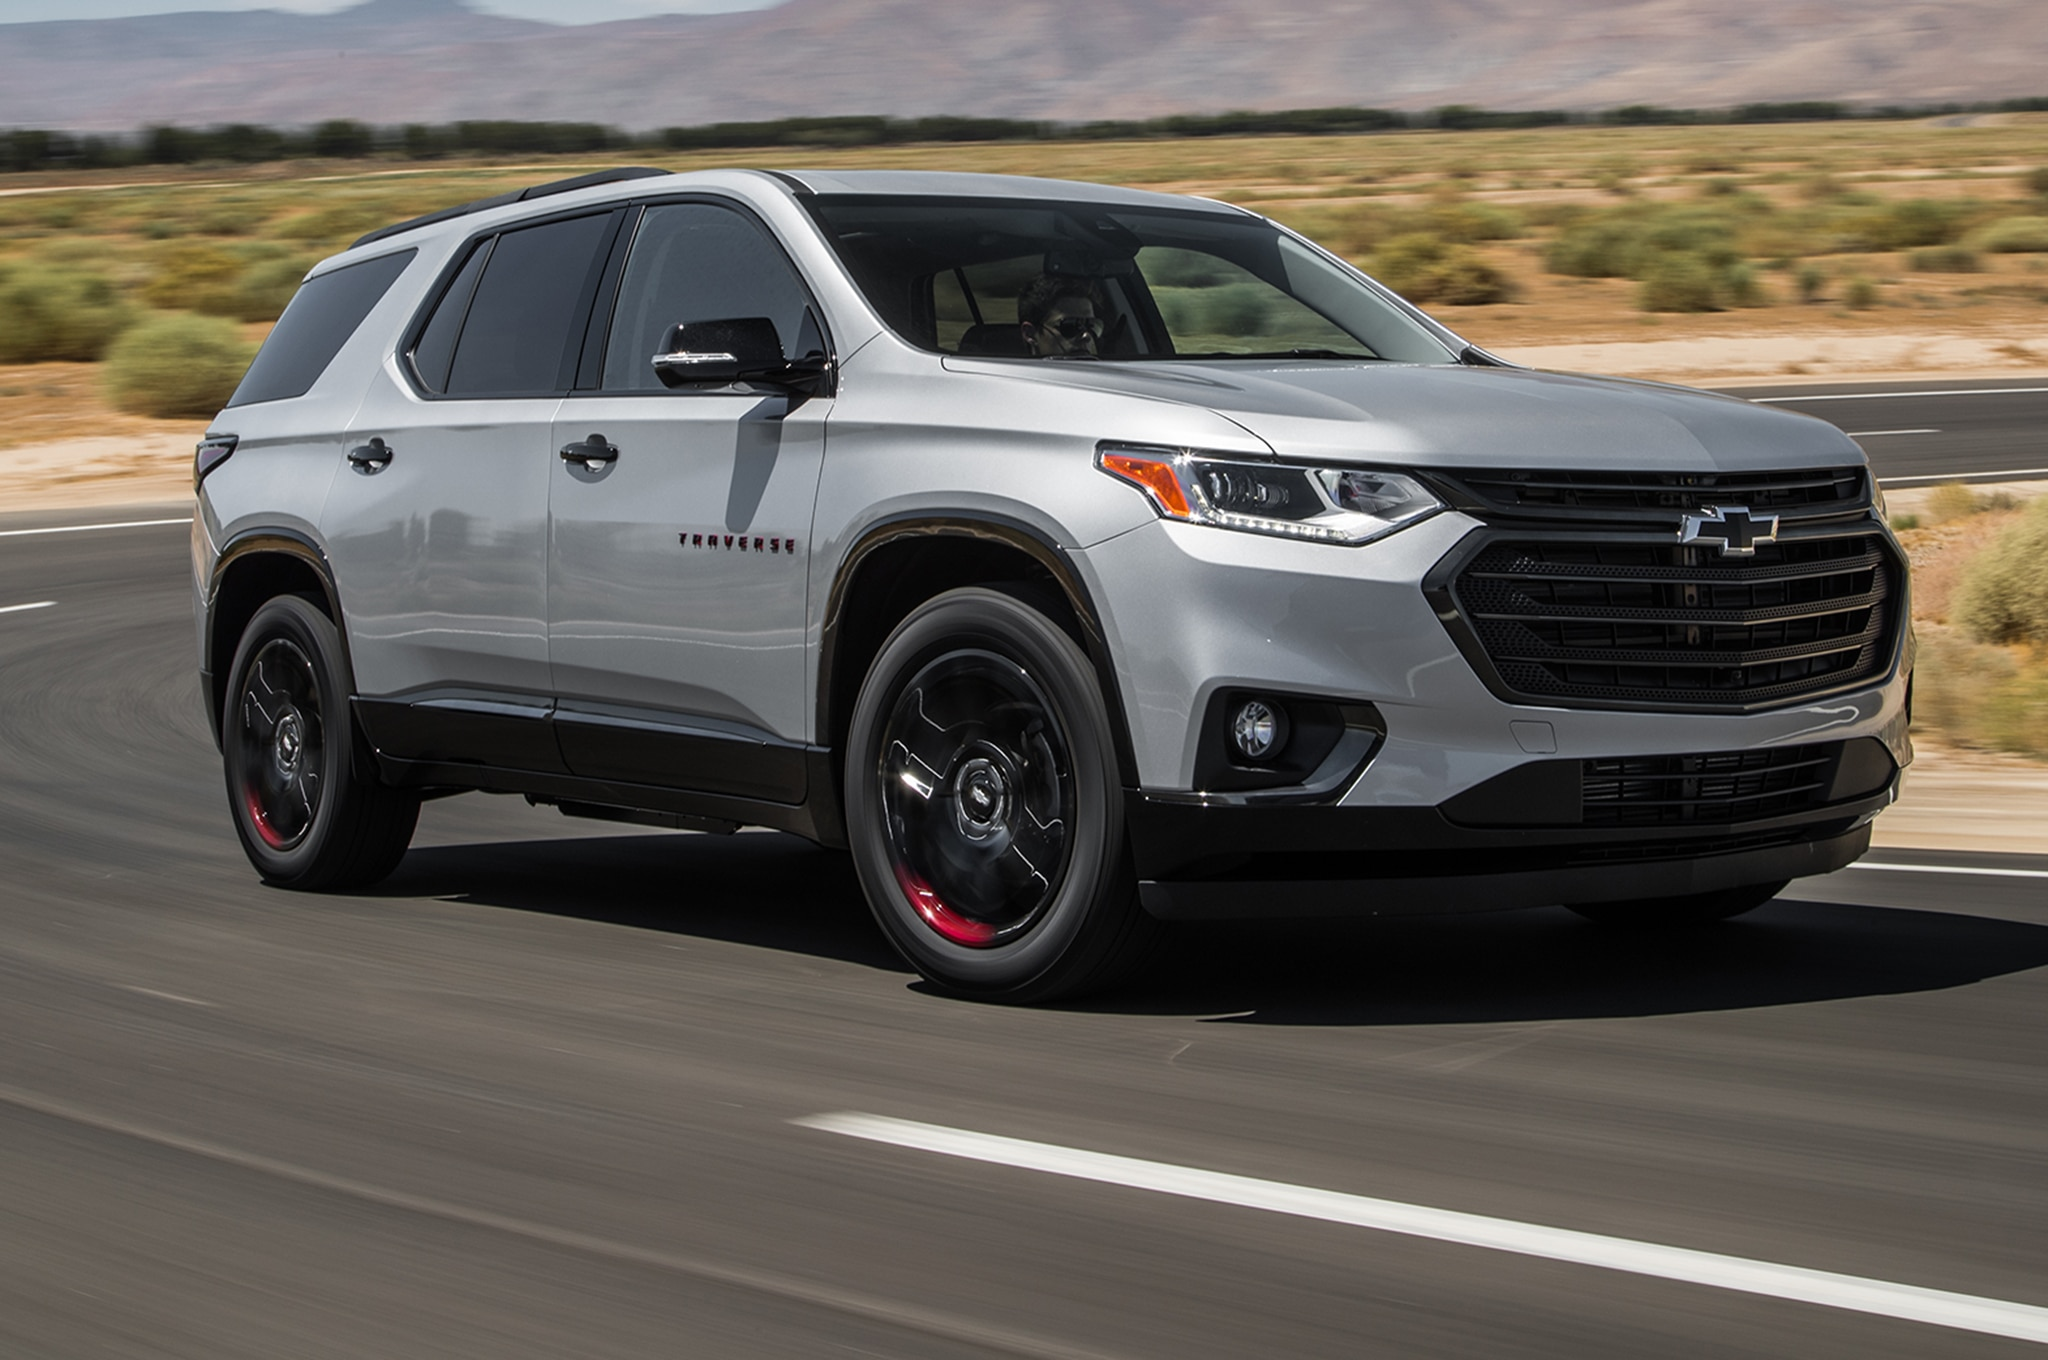 2018 Chevrolet Traverse AWD Front Three Quarter In Motion 02